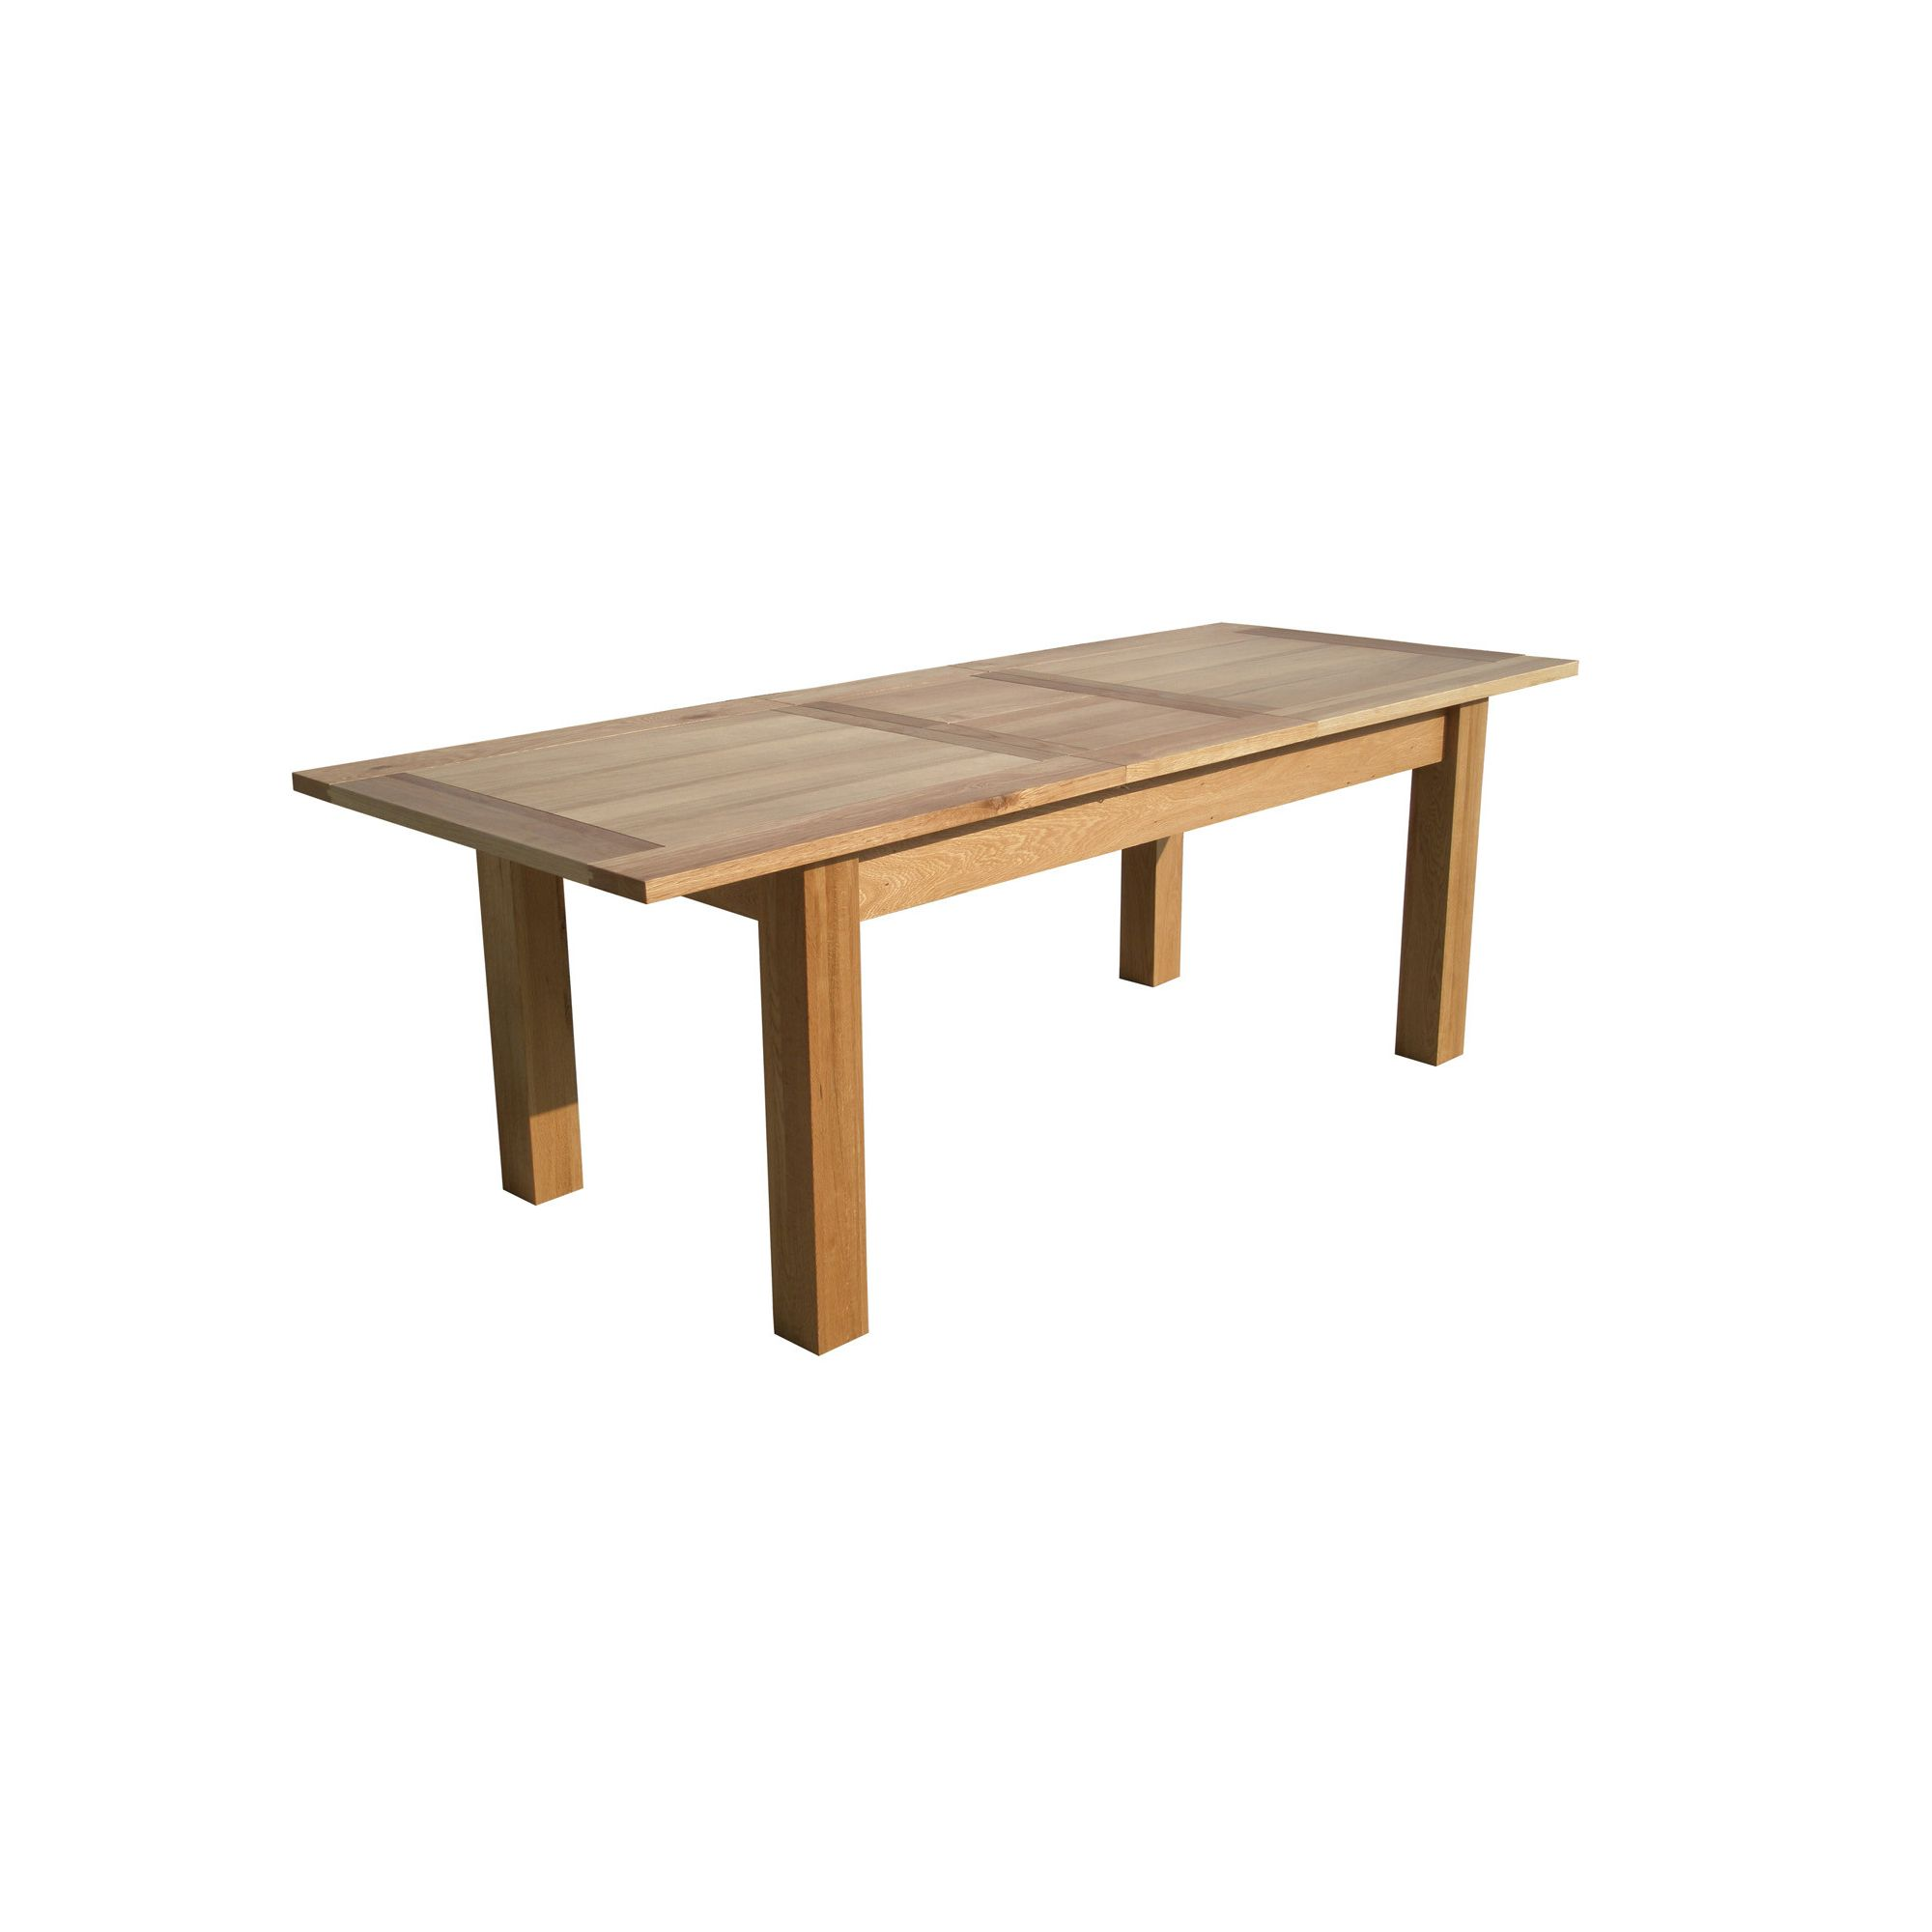 Home And Garden Furniture Home Zone Furniture Churchill Solid Oak 180 Cm Extendable Dining